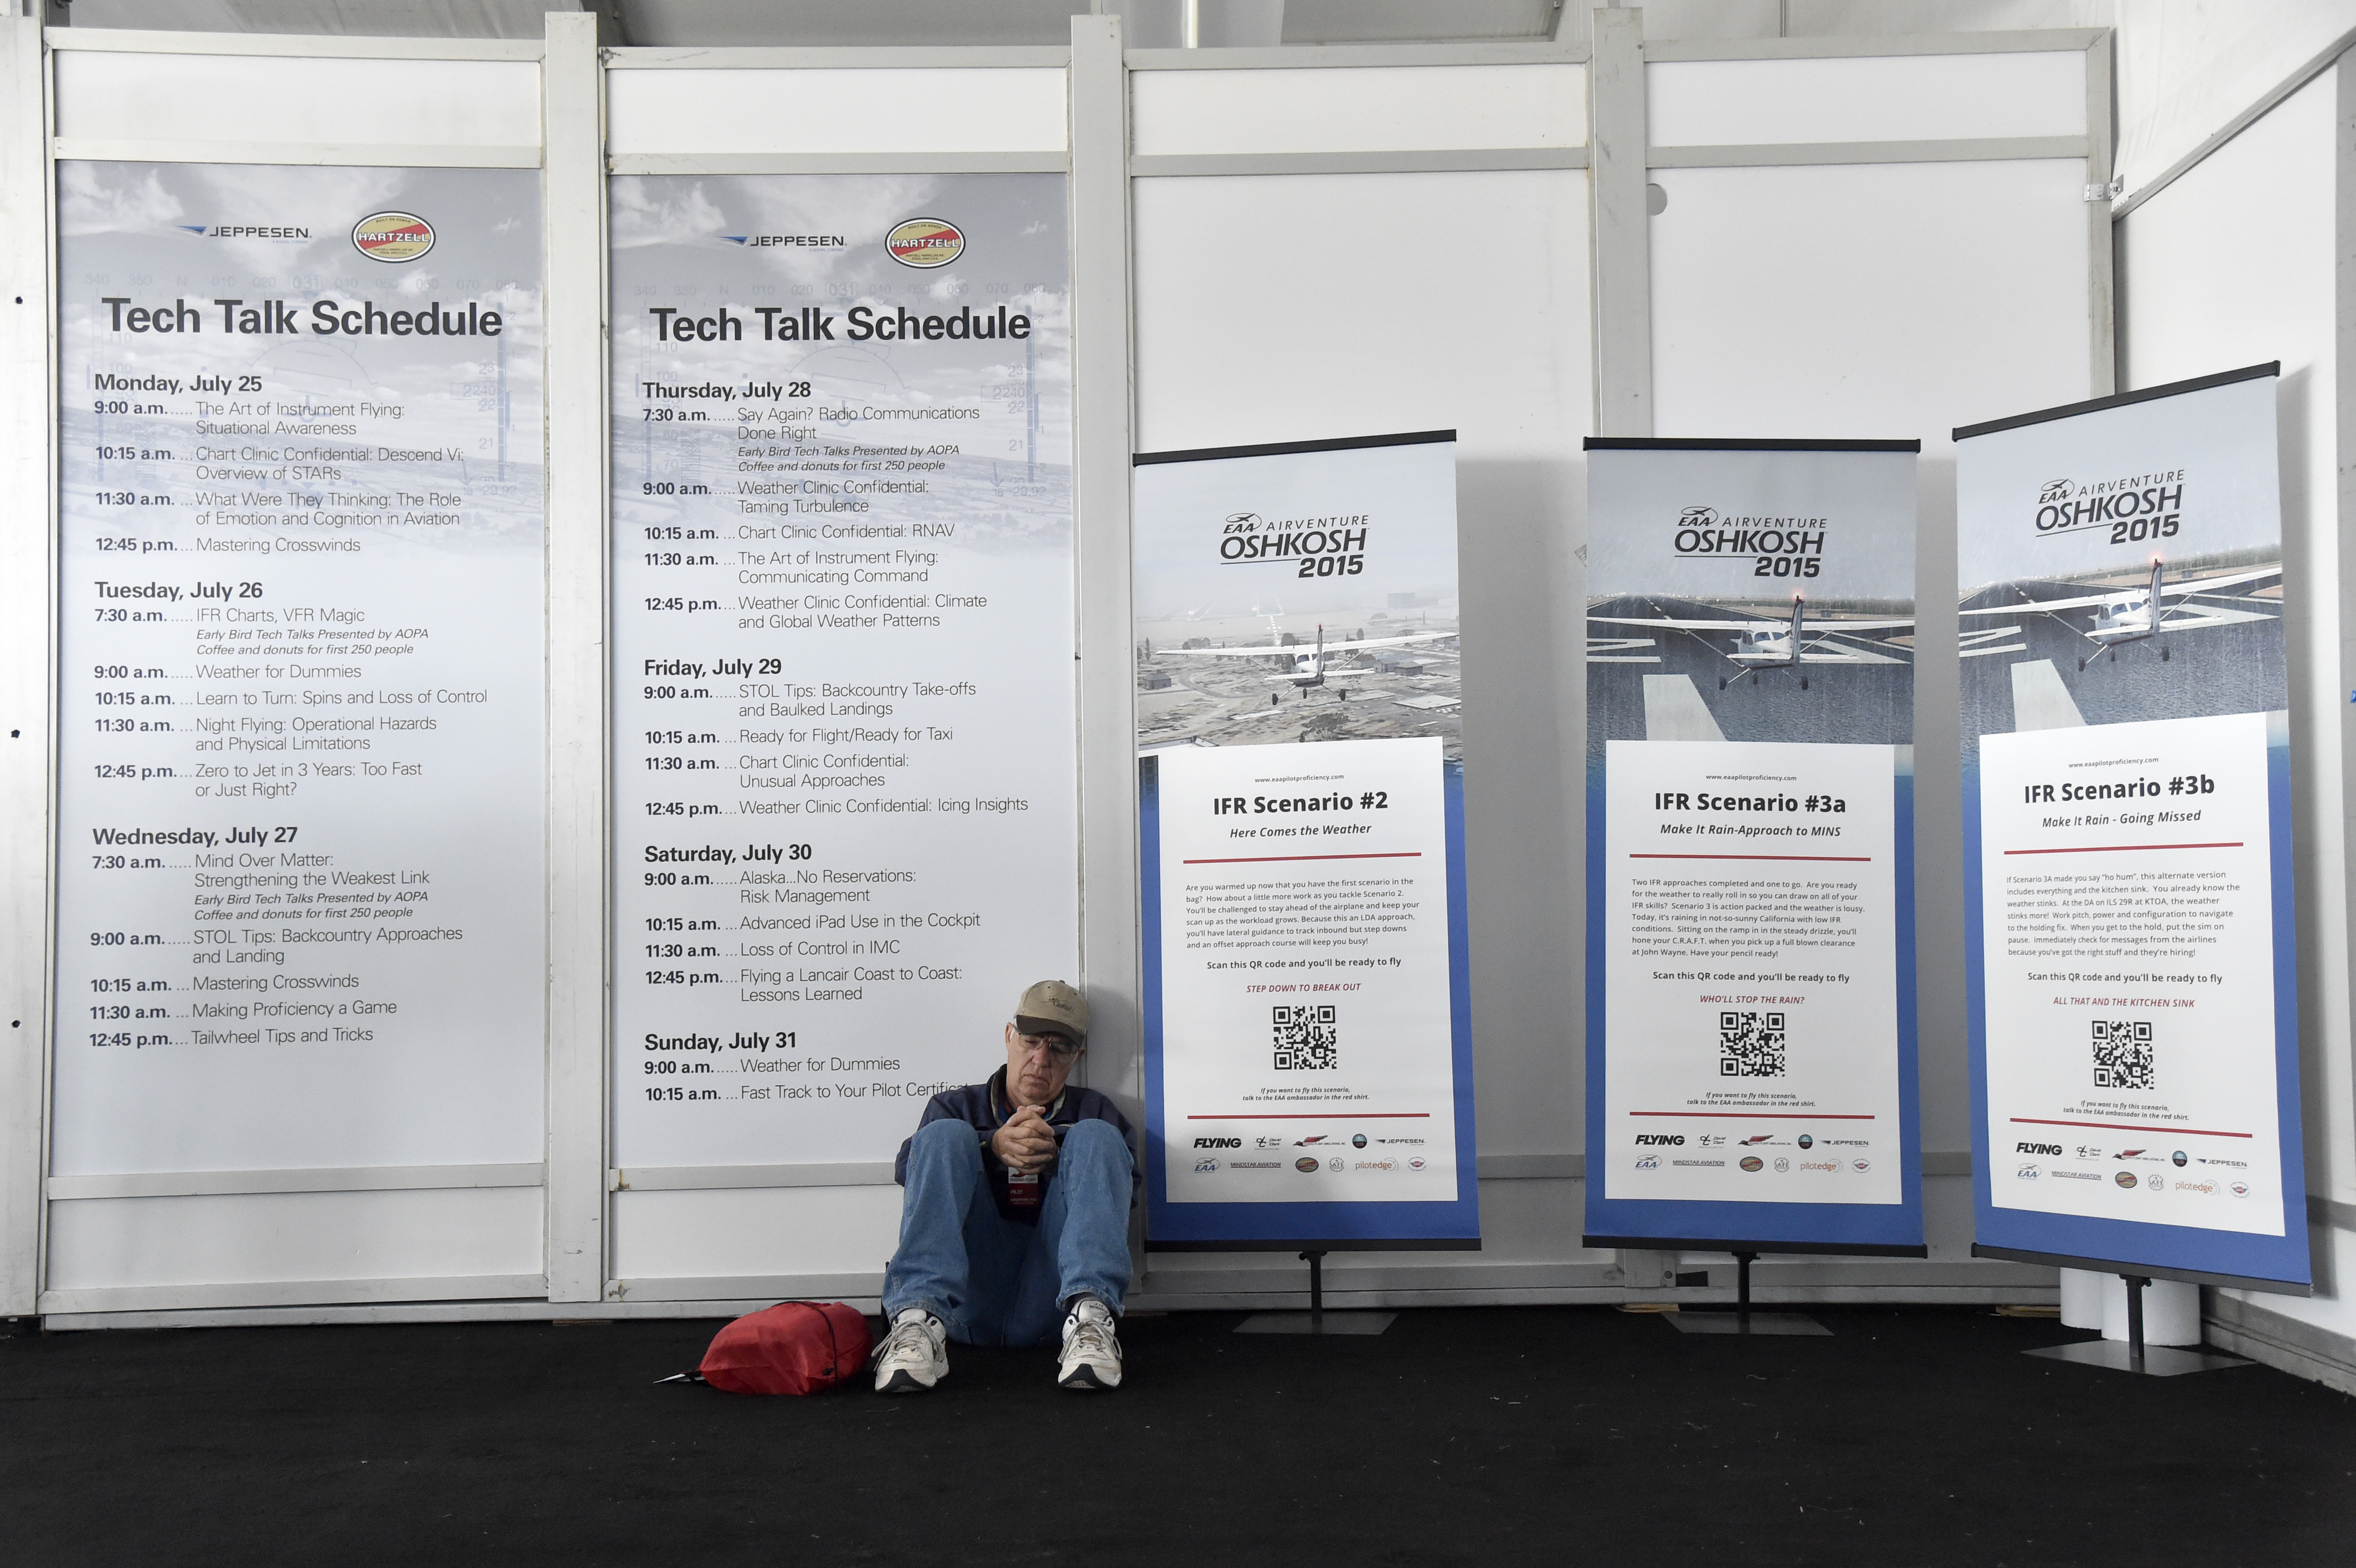 A pilot waits near Tech Talk posters in the Pilot Proficiency Center during EAA AirVenture. Photo by David Tulis.